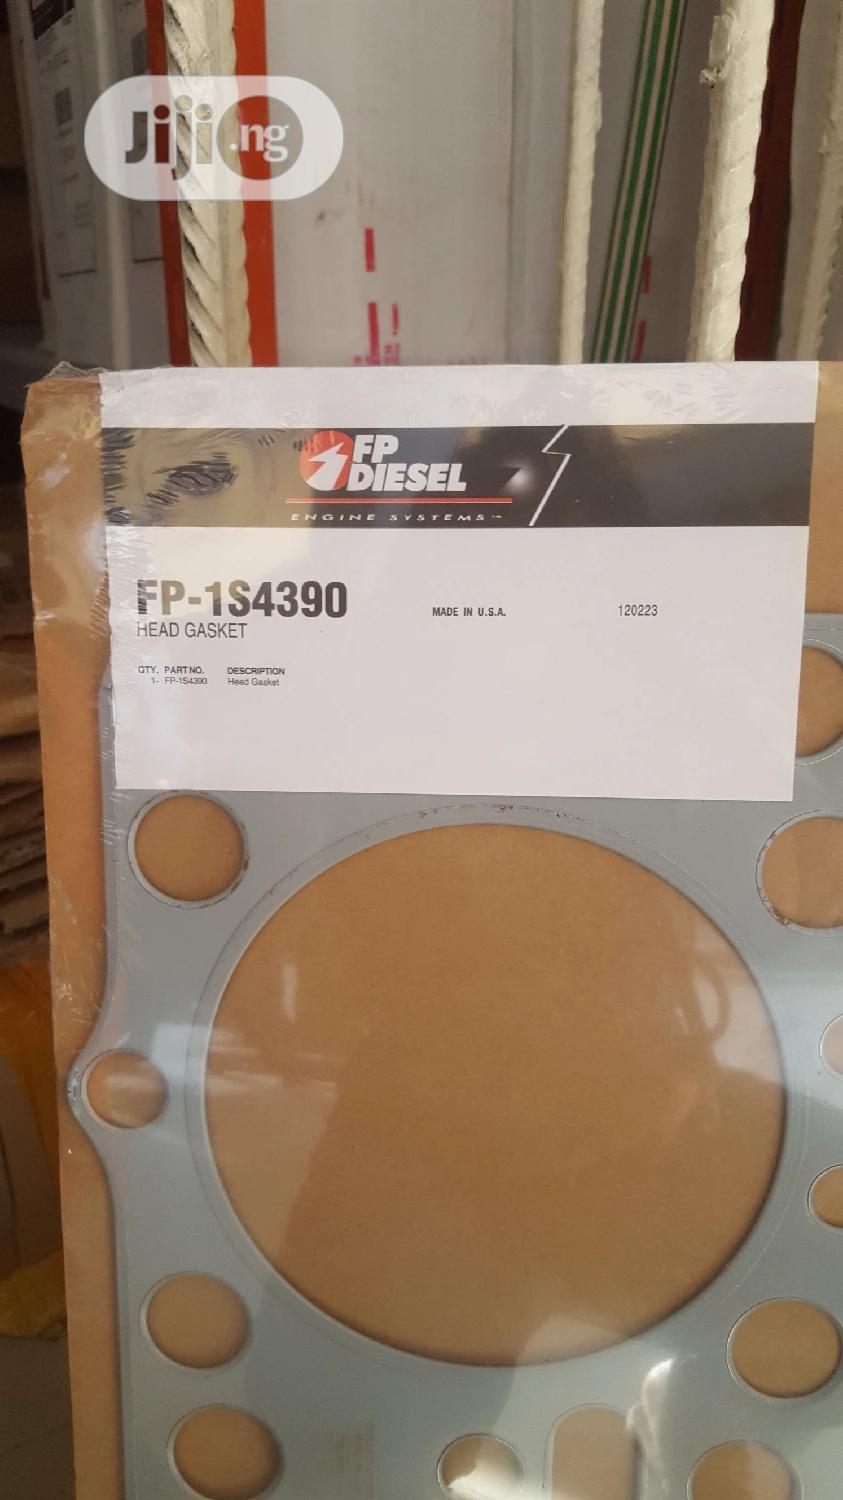 Top Gasket D8H Part 154390 For All Caterpillar 4 Sale Lagos | Vehicle Parts & Accessories for sale in Badagry, Lagos State, Nigeria